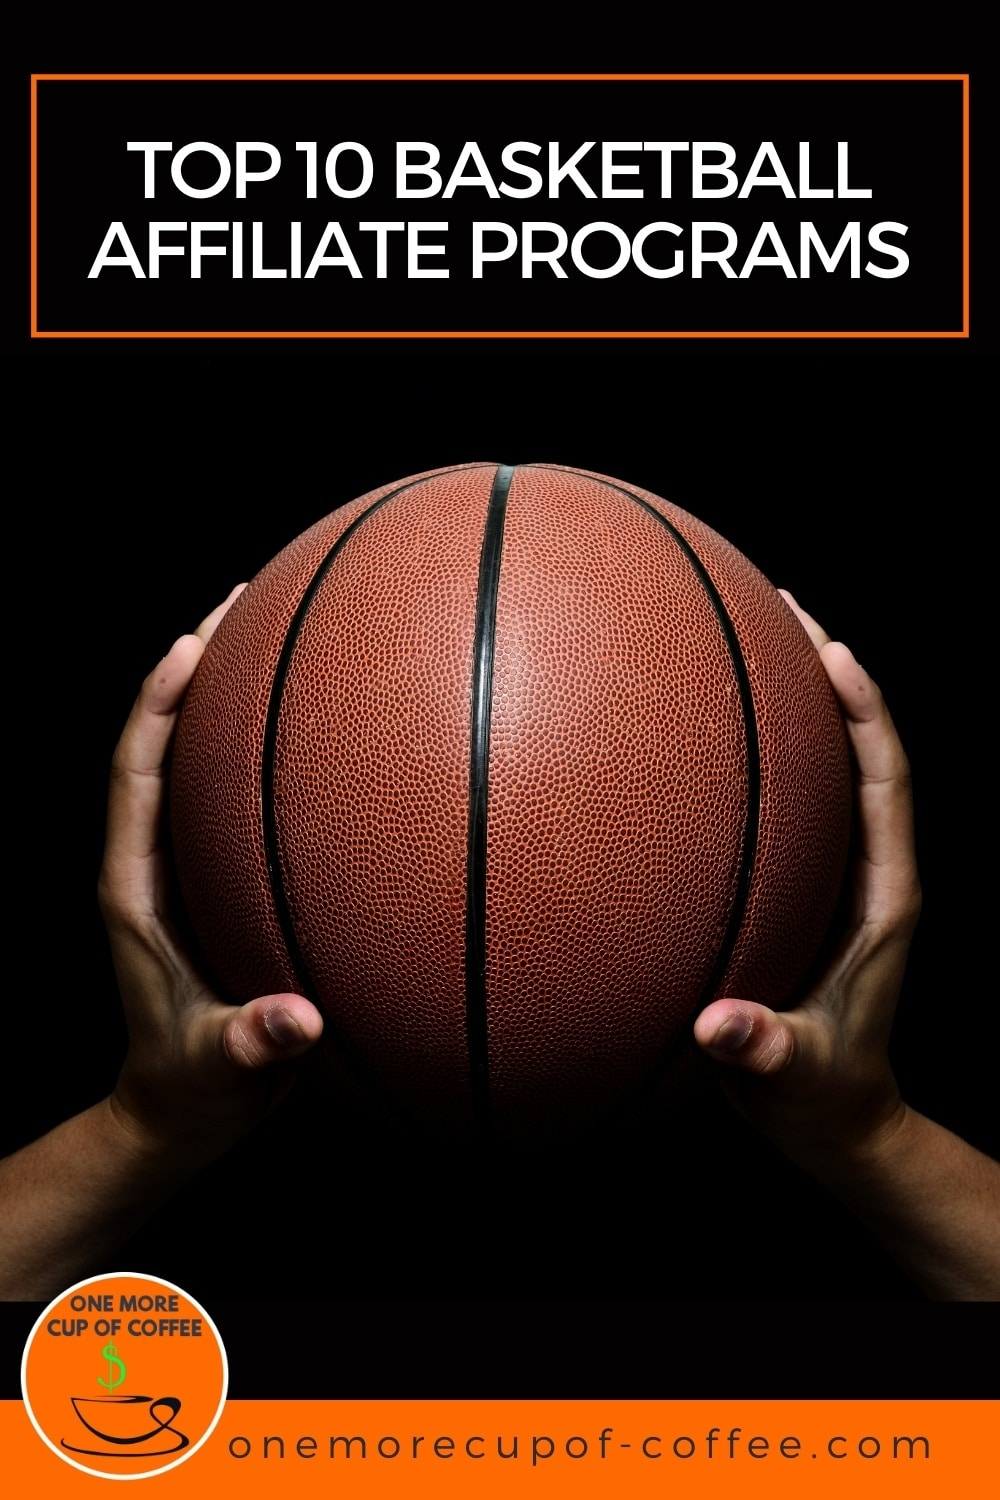 """closeup image of hands holding basketball against a black background; with text overlay Top 10 Basketball Affiliate Programs"""""""